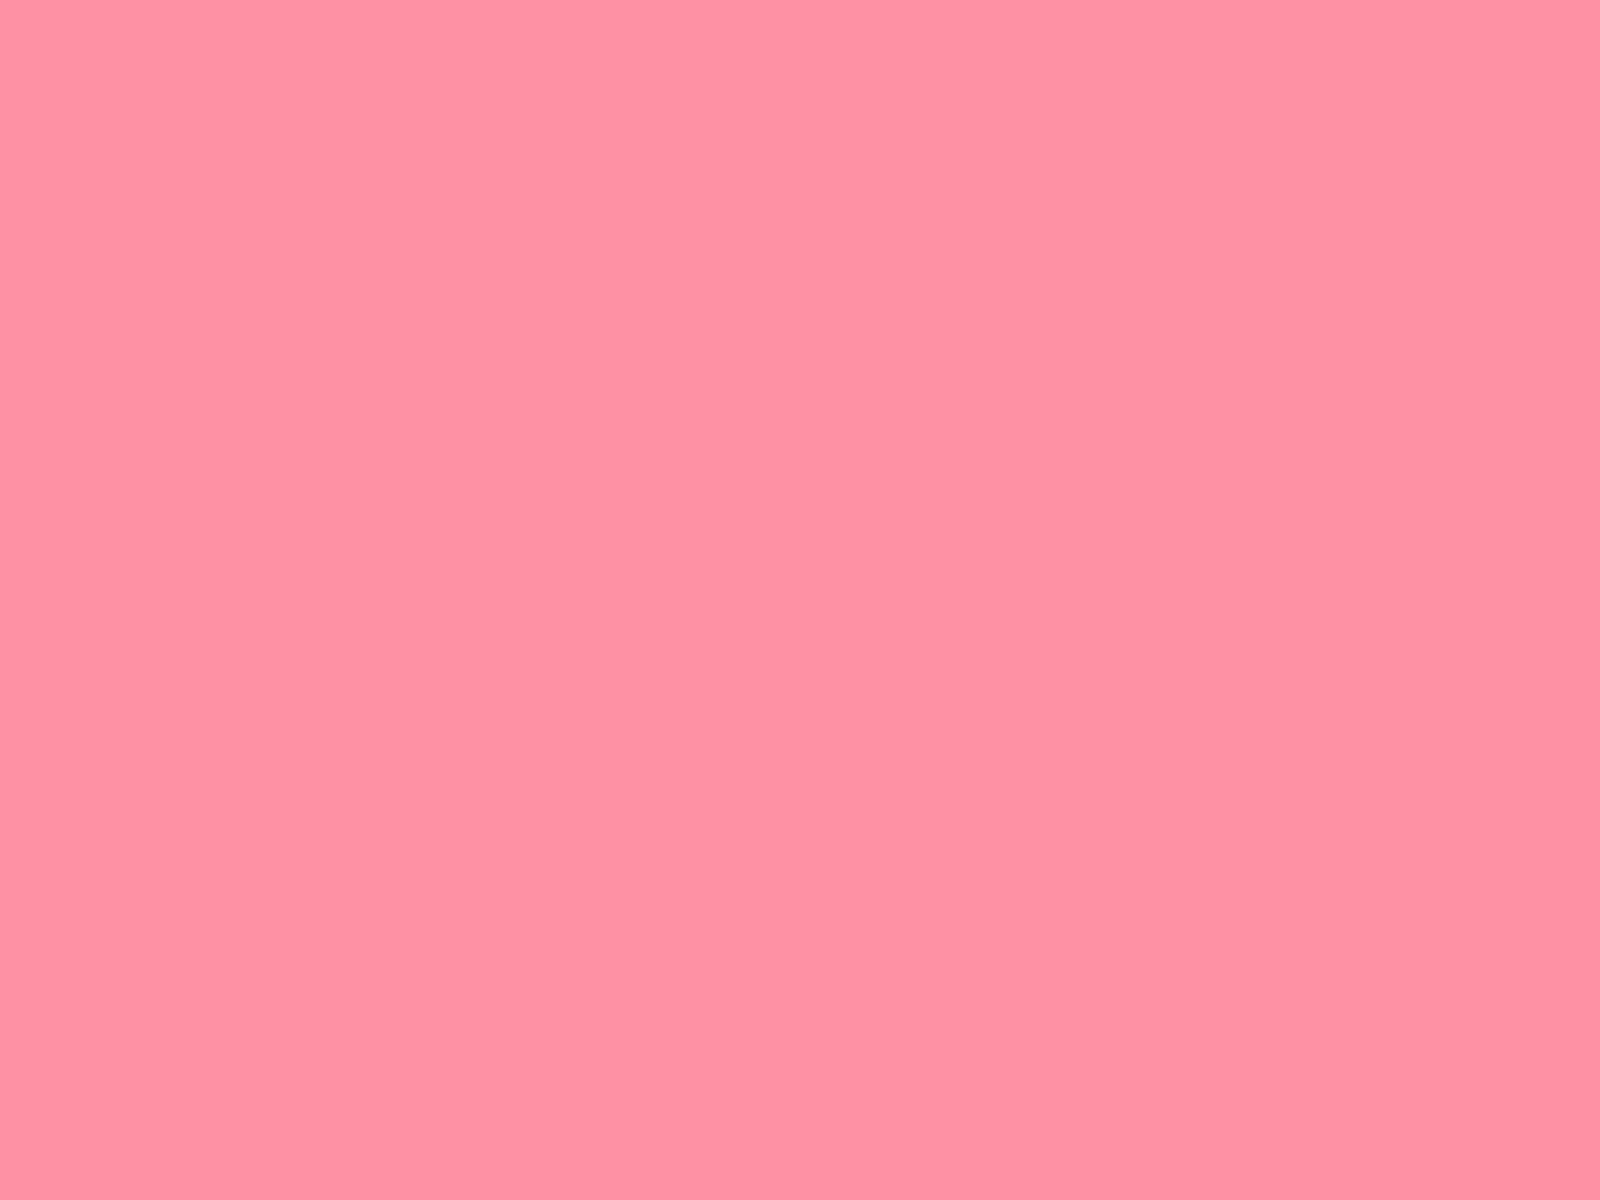 1600x1200 Salmon Pink Solid Color Background